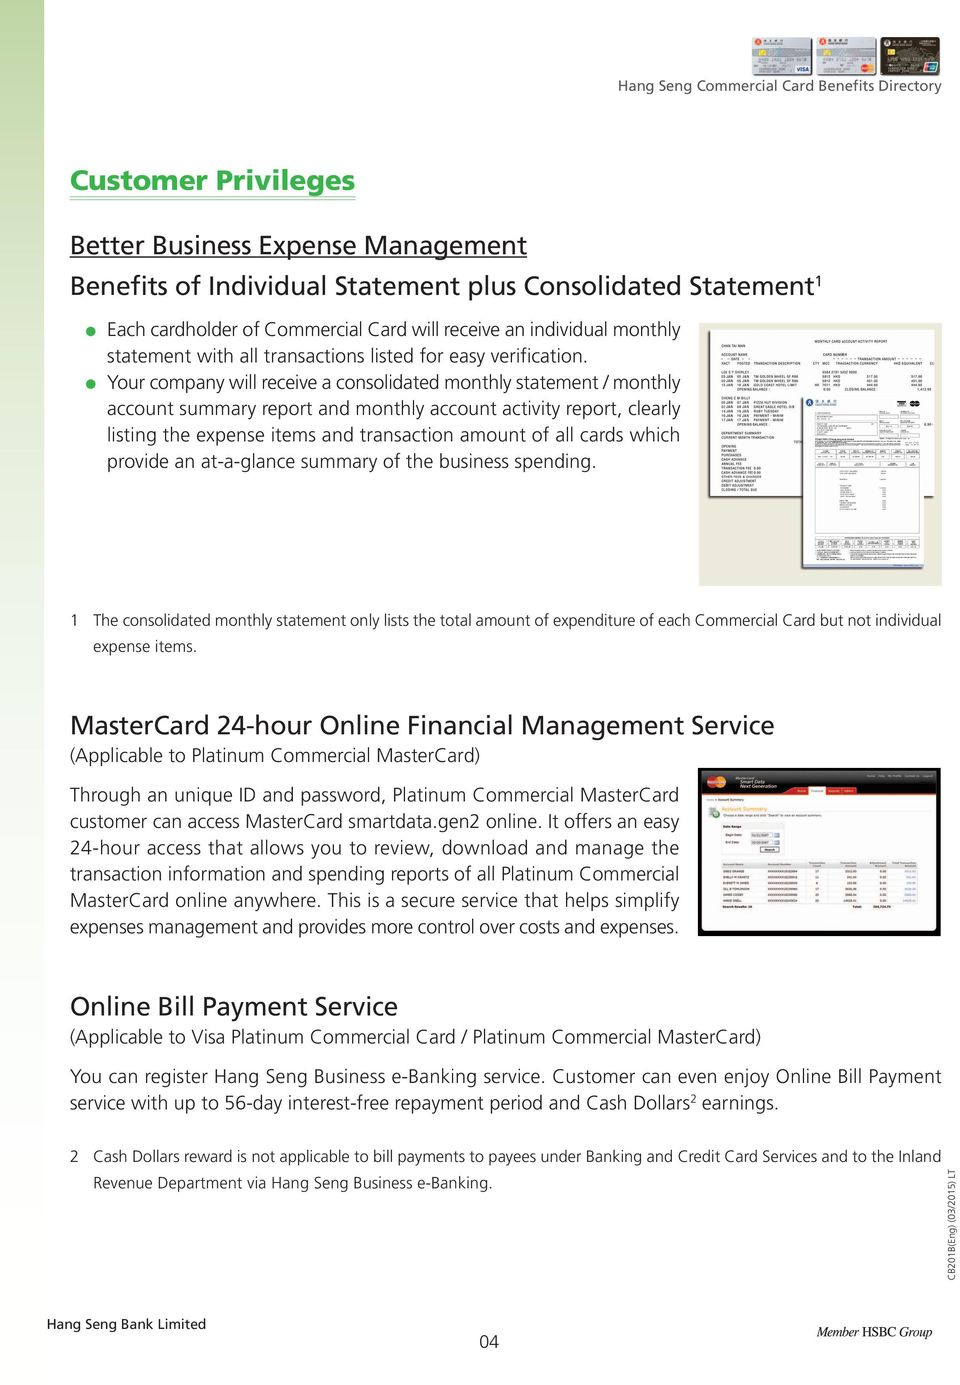 Your company will receive a consolidated monthly statement / monthly account summary report and monthly account activity report, clearly listing the expense items and transaction amount of all cards